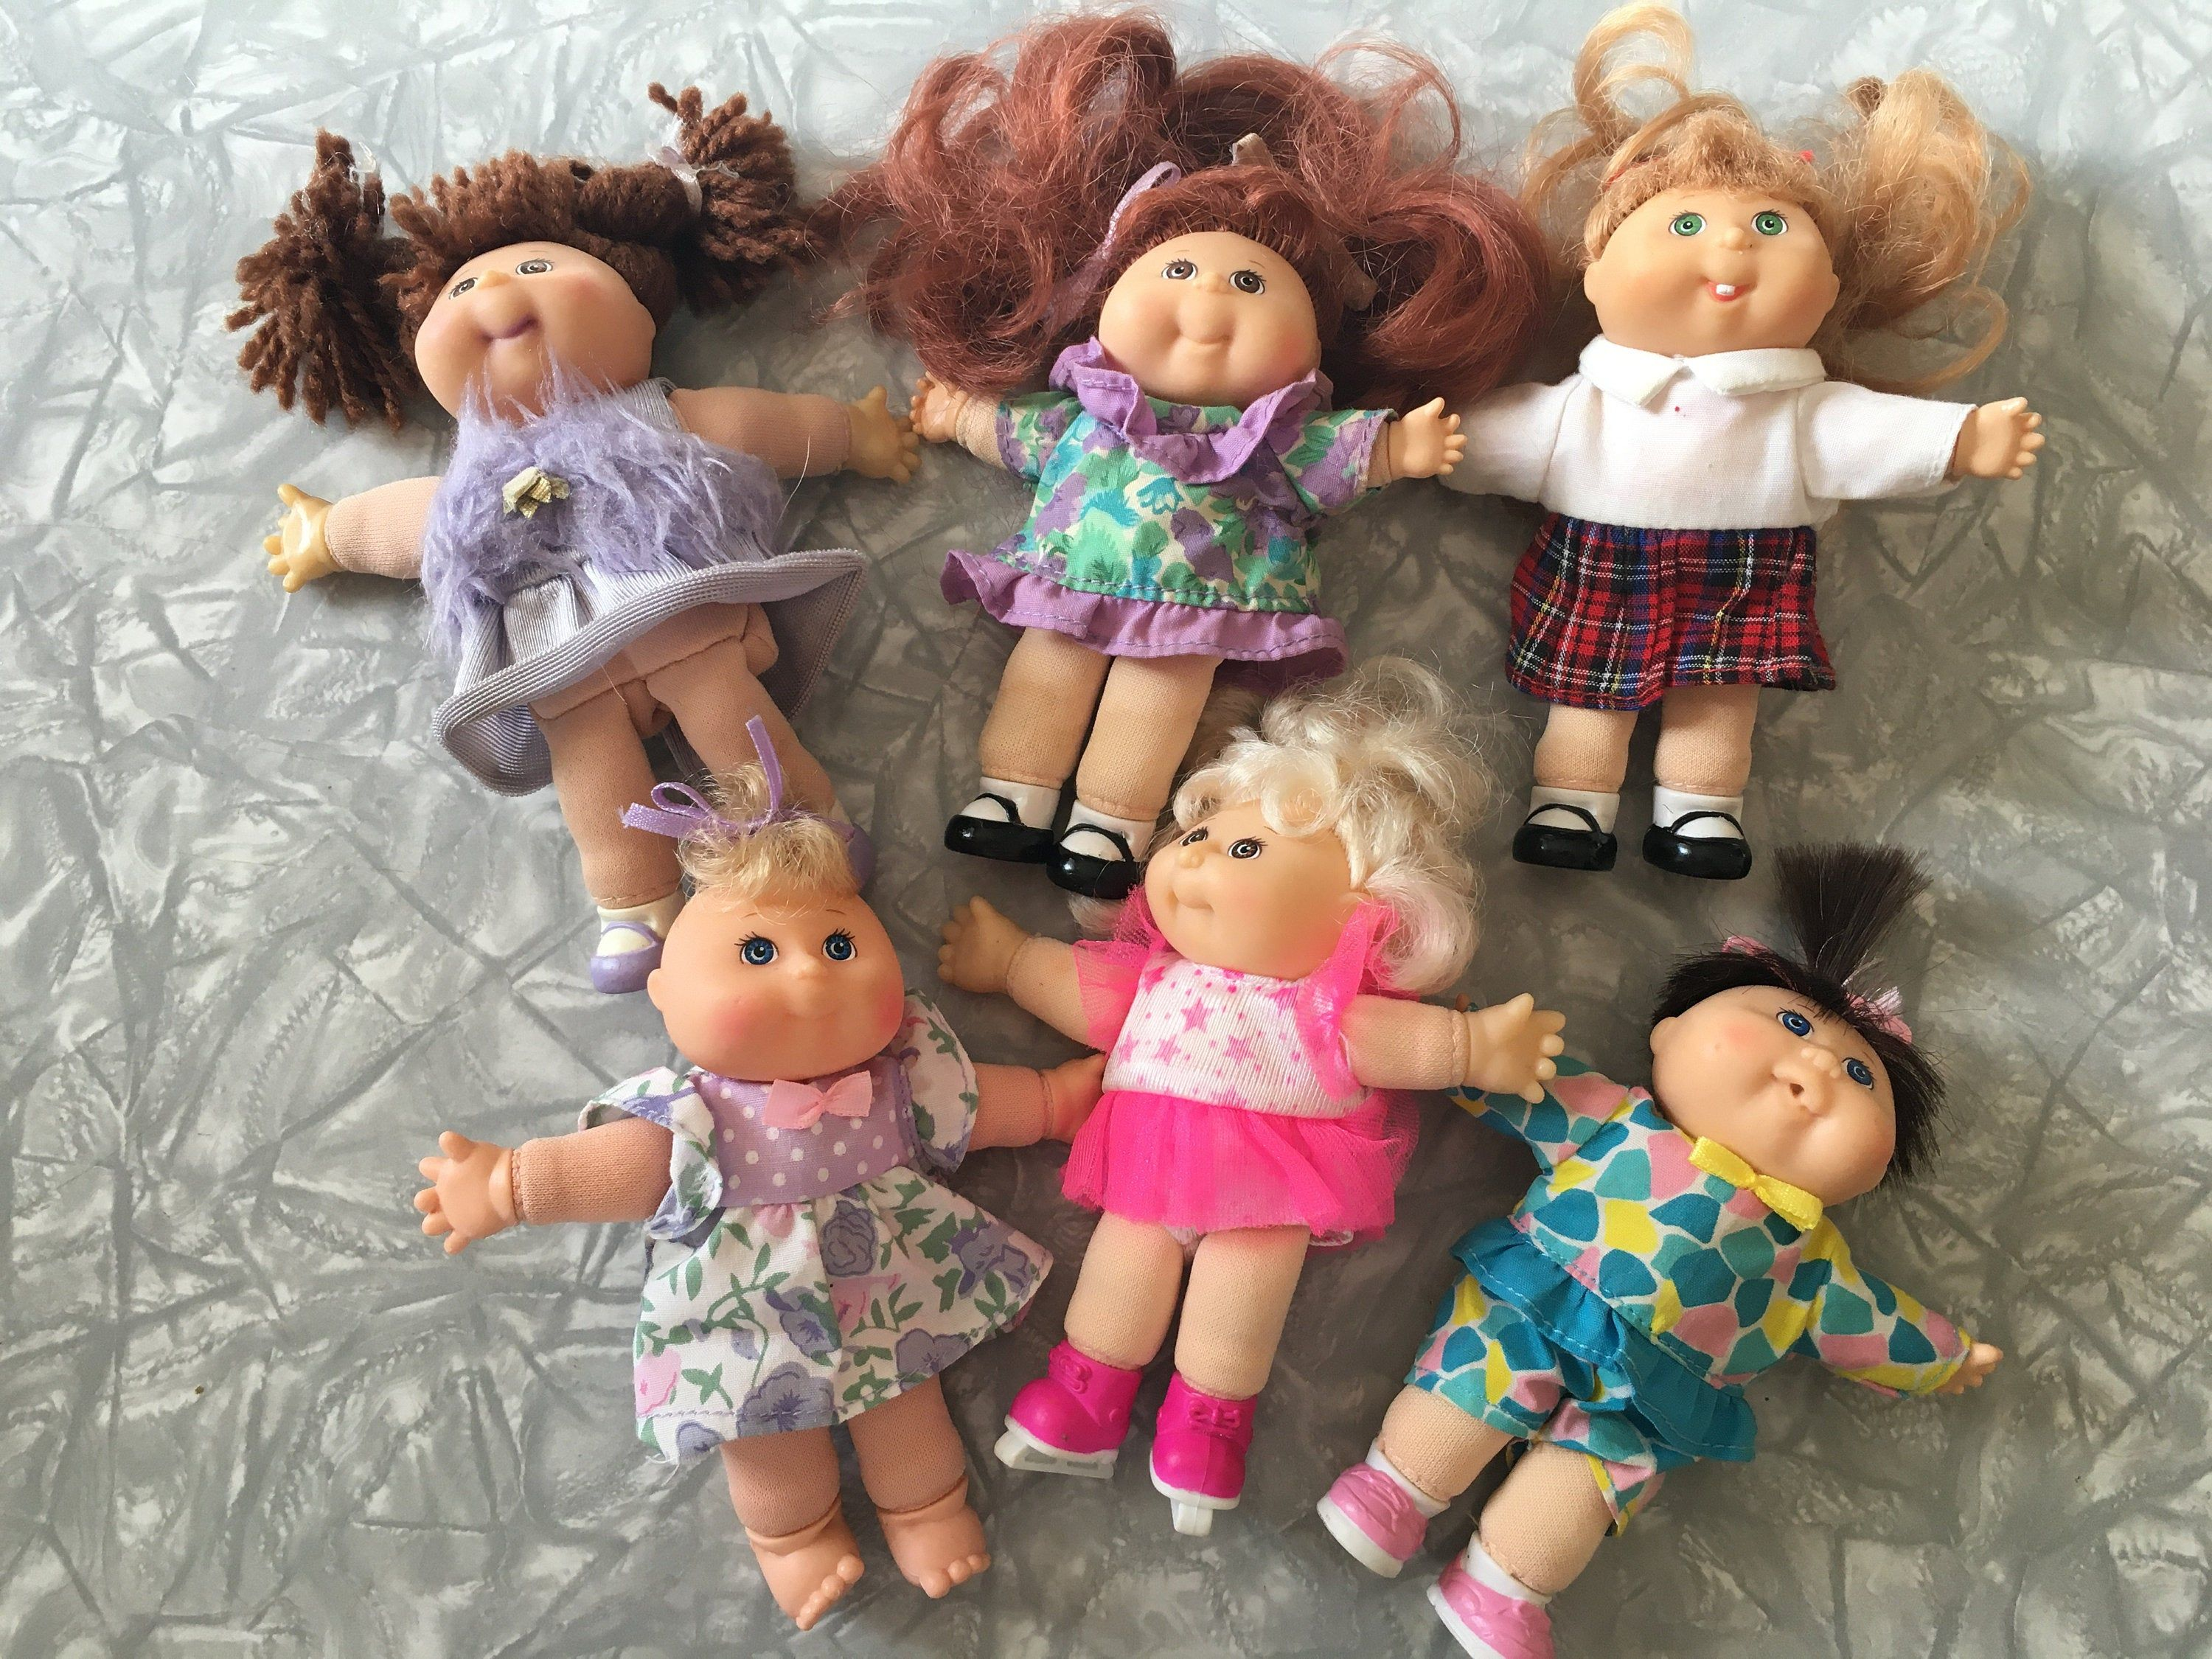 Lot Of 6 1995 Cabbage Patch Kid Baby Collectible 5 Mini Dolls Mattel Arco Toys Cabbage Patch Kids Patch Kids Cabbage Patch